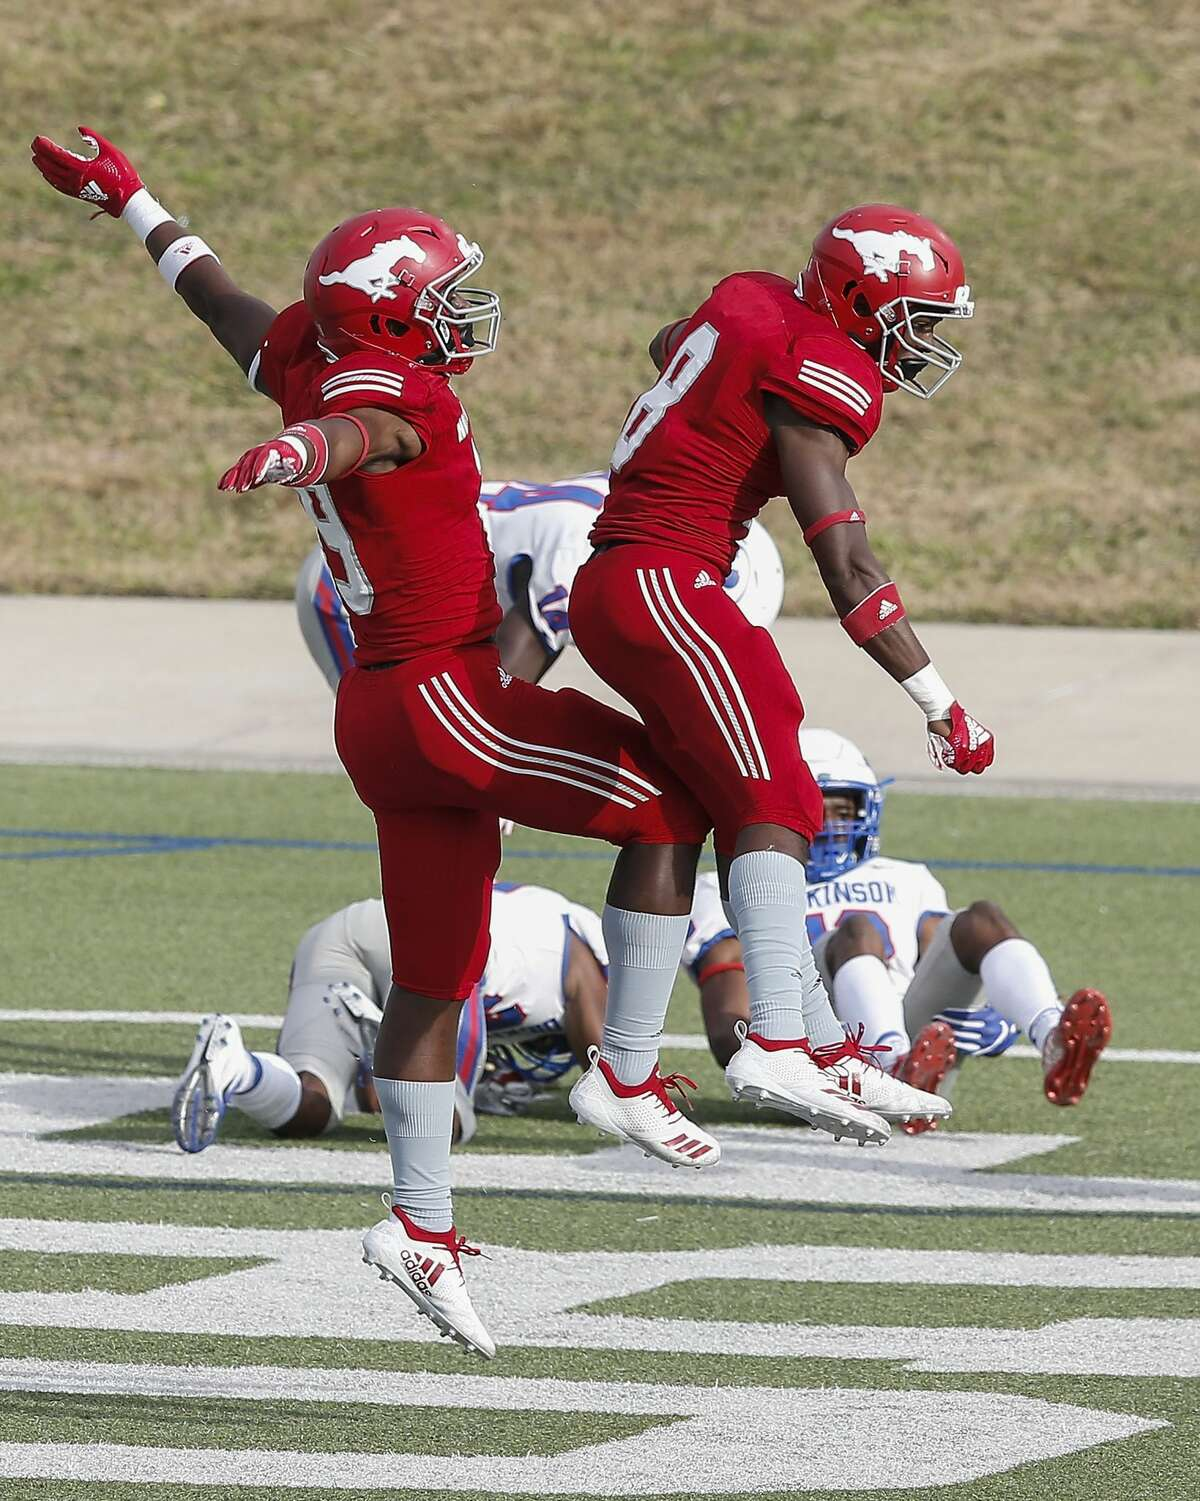 North Shore 65, Dickinson 21 North Shore Mustangs Shadrach Banks (19) and North Shore Mustangs Chance Pillar (8) celebrate after a touchdown in the second half during the high school football playoff game between the Dickinson Gators and the North Shore Mustangs in Houston, TX on Friday, November 23, 2018. North Shore defeated Dickinson 65-21.